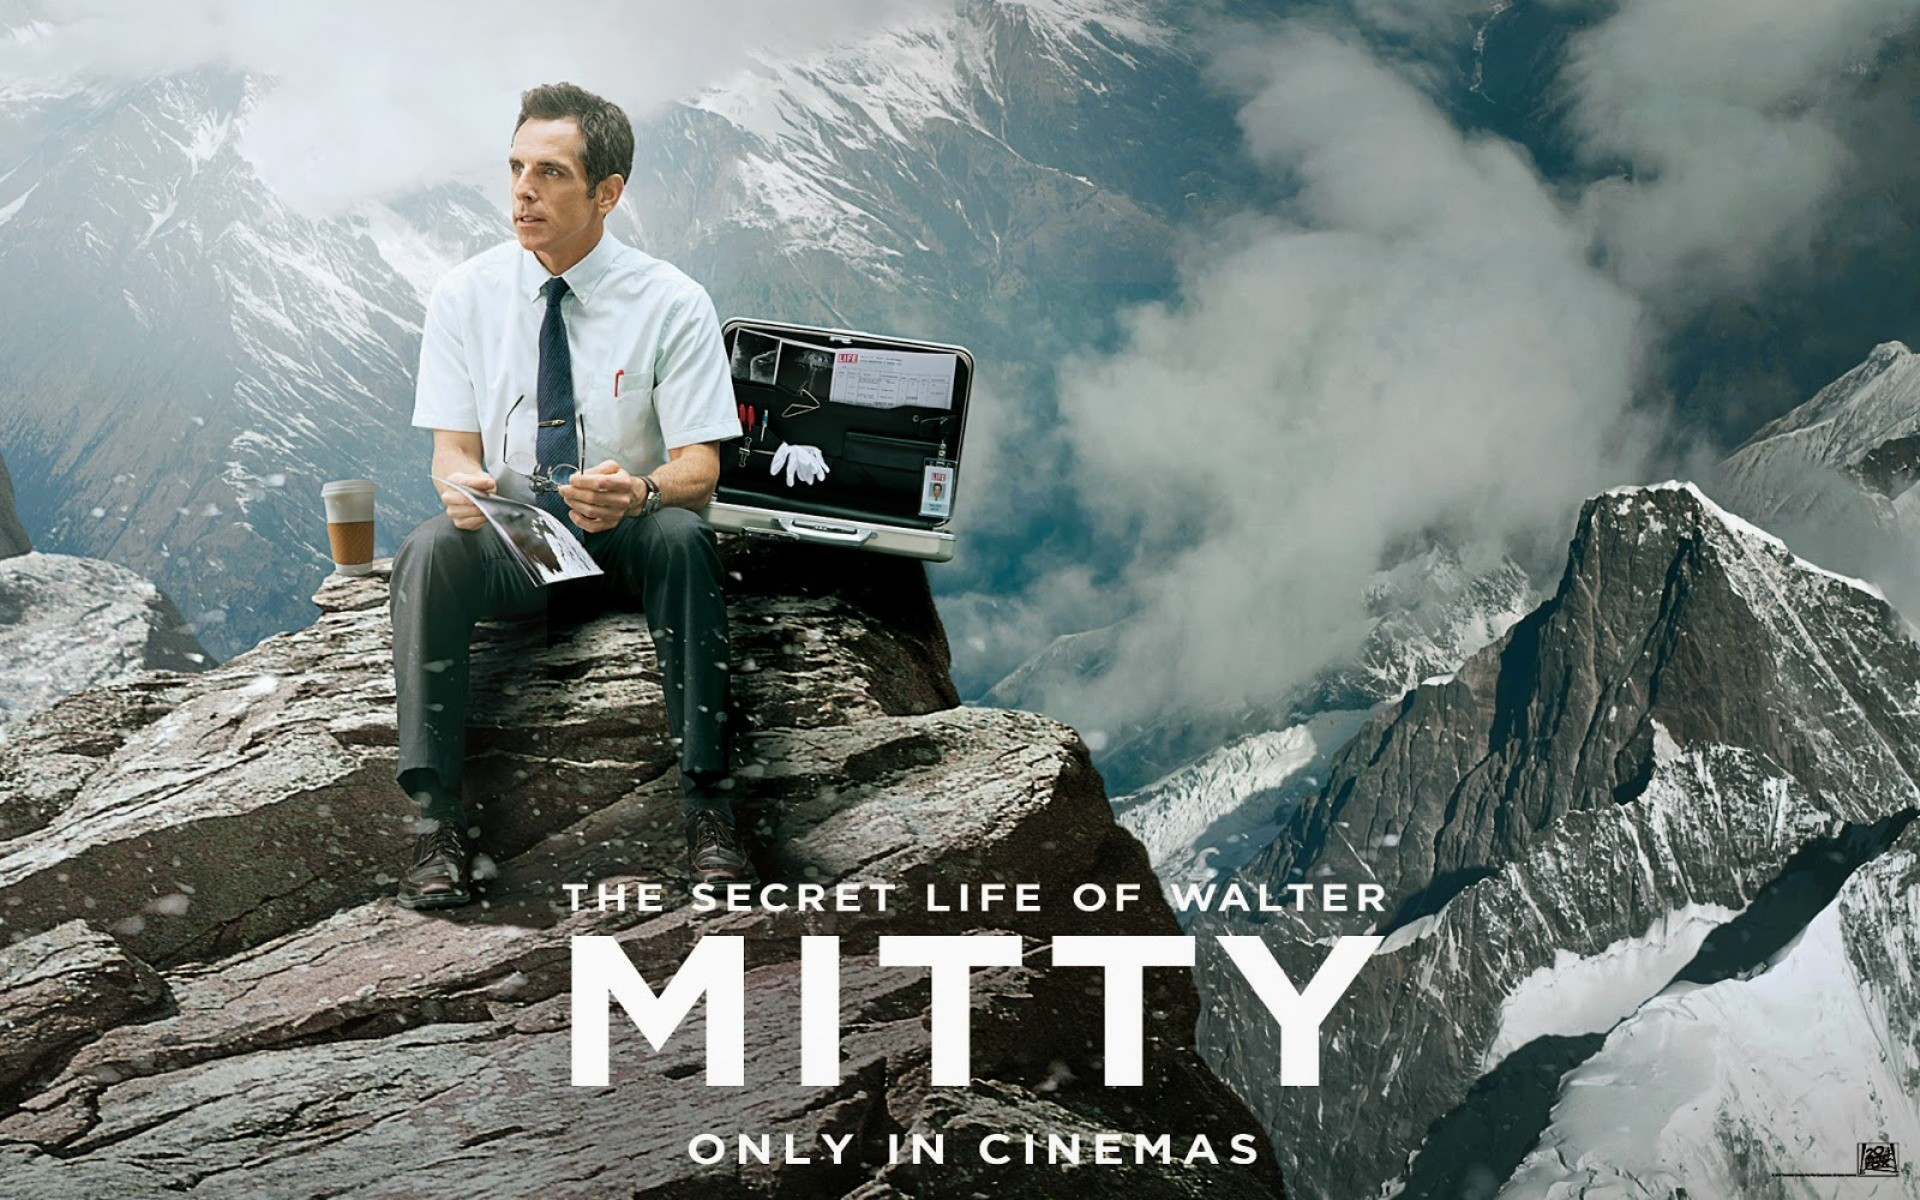 secret-life-mitty